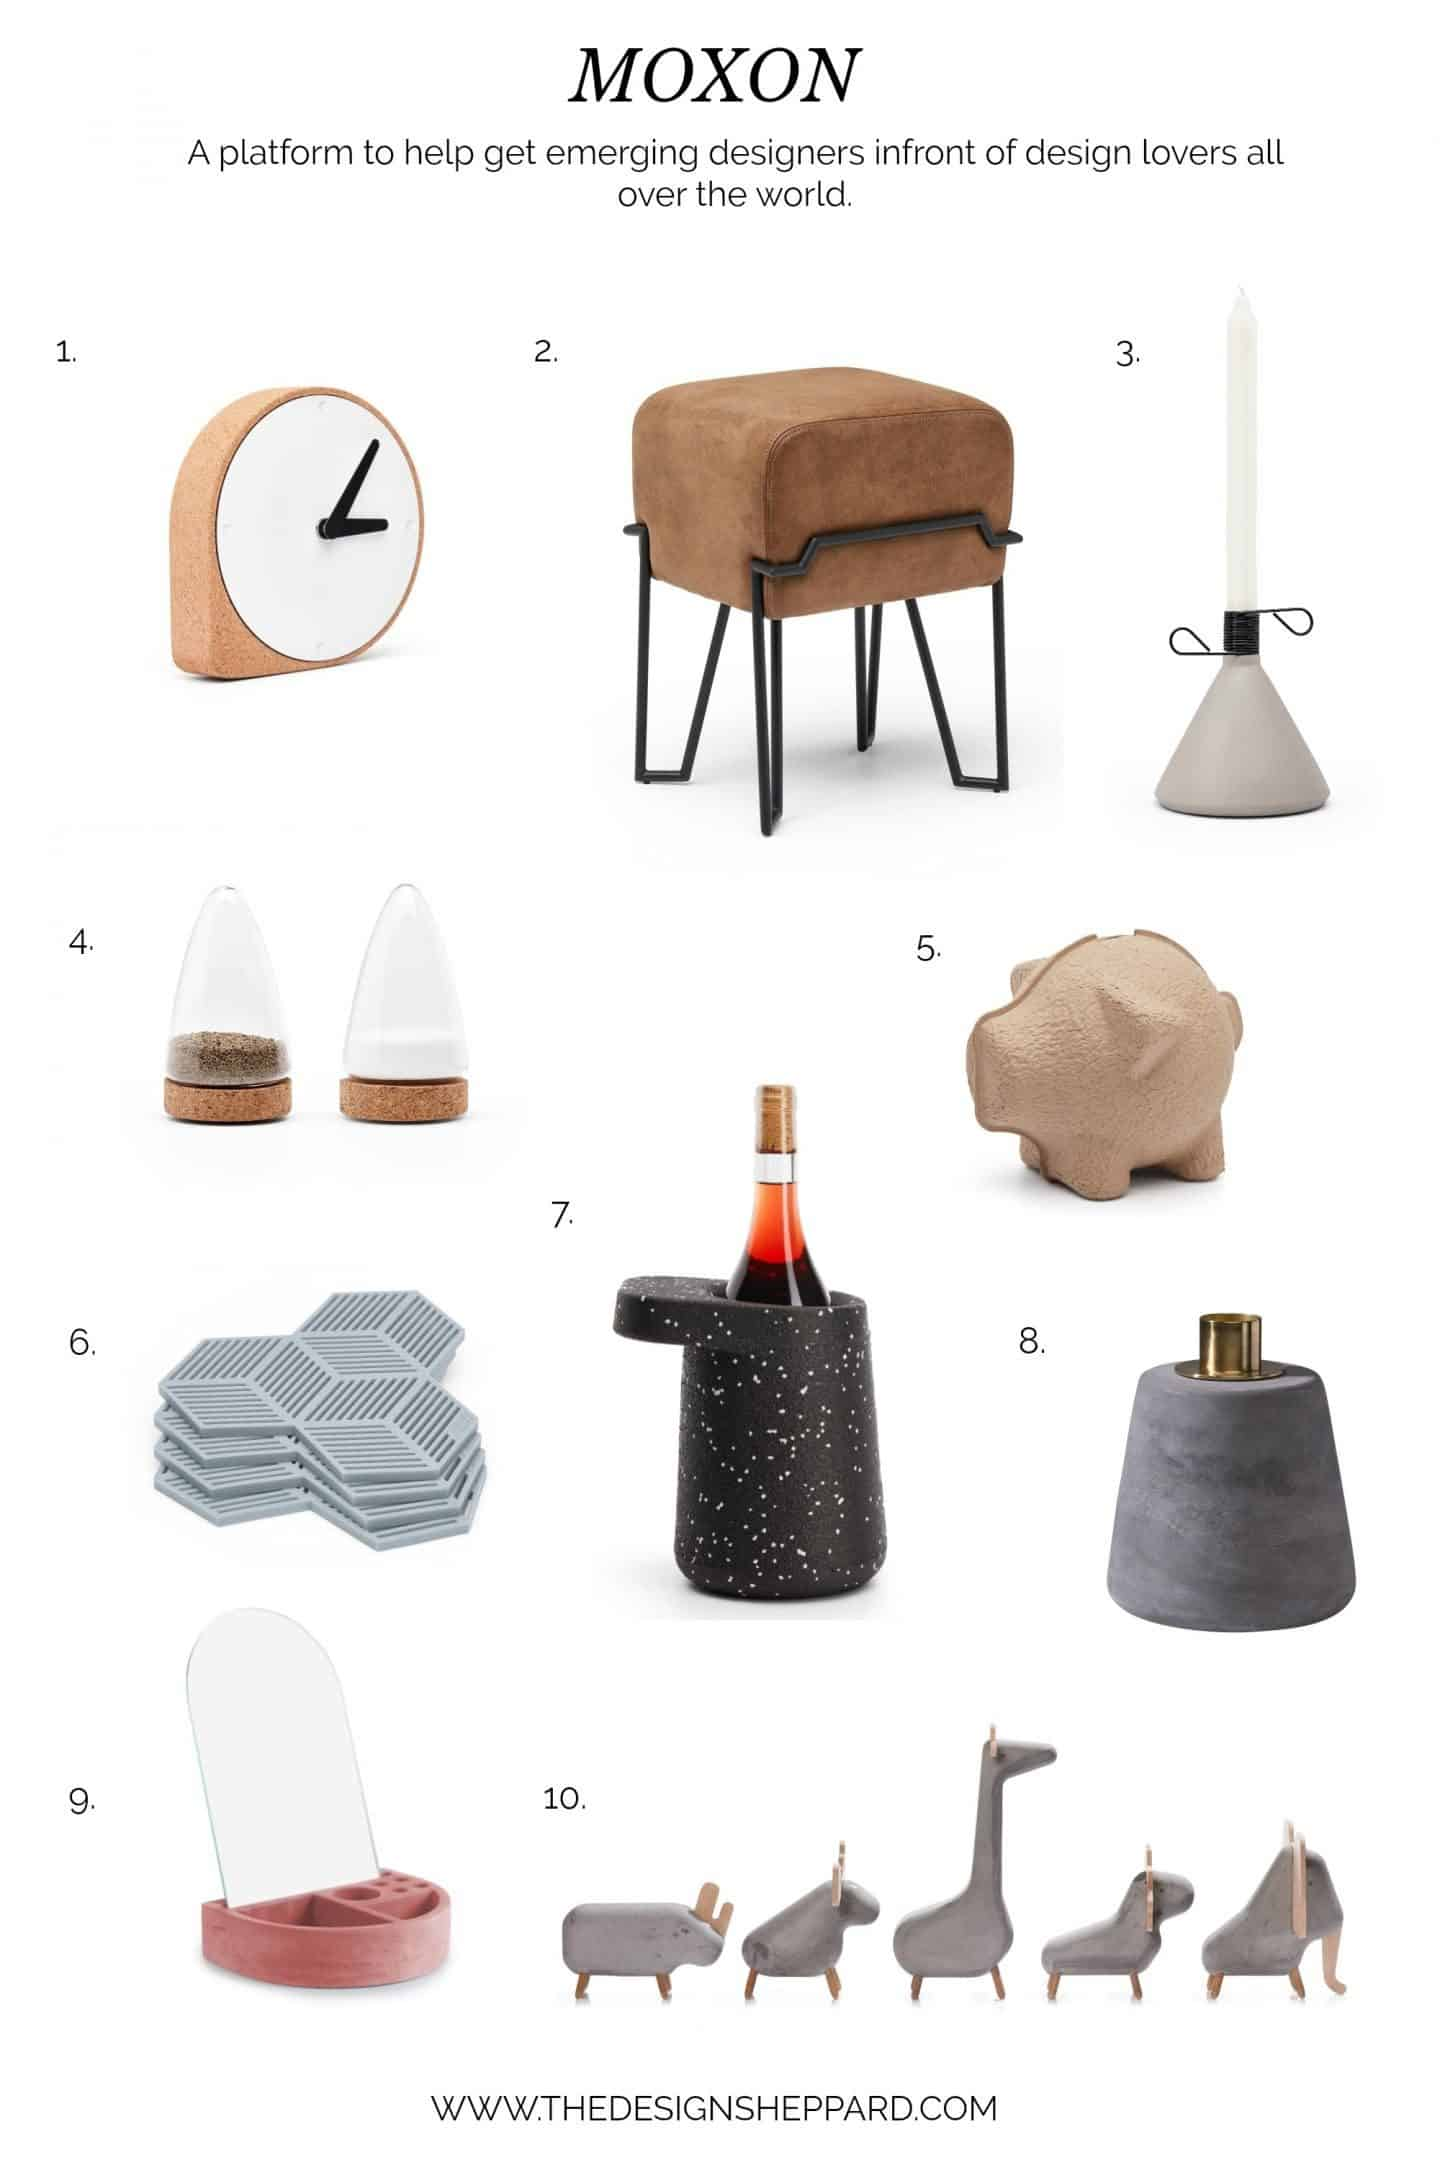 A selection of products from MOXON, an online store selling homewares and decorative accessories by emerging designers